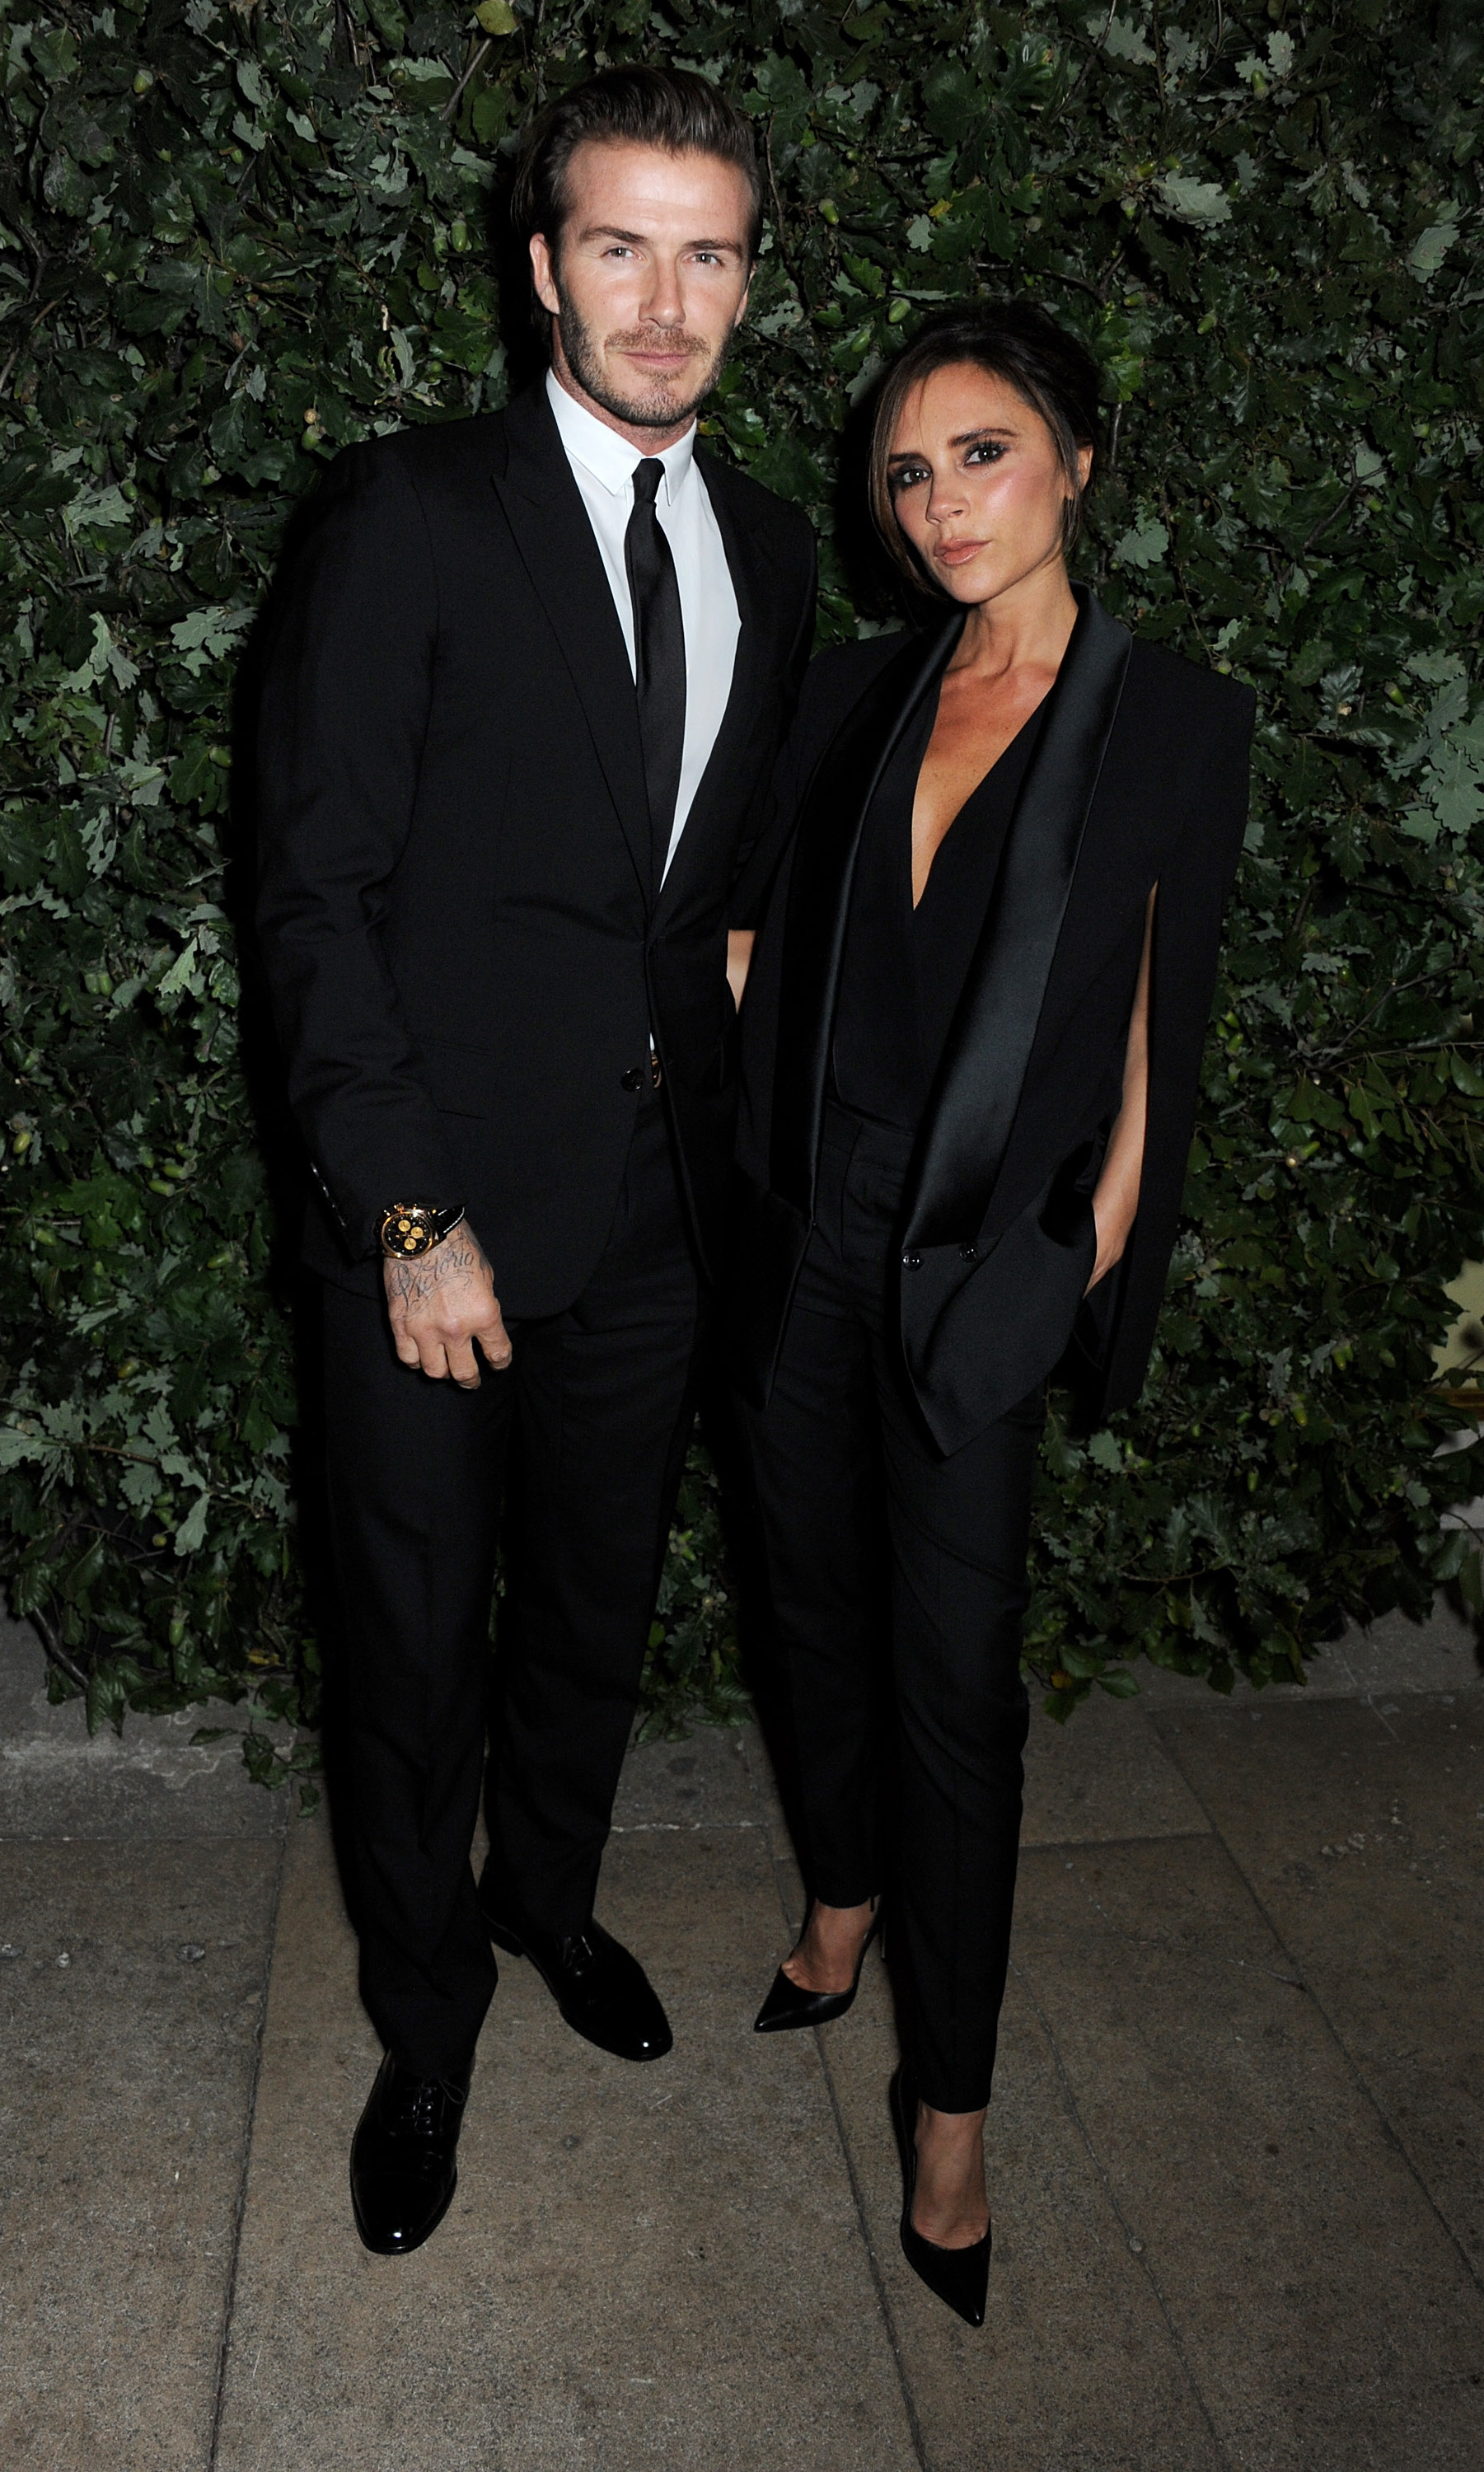 David and Victoria Beckham look sleek in matching black suits at the The Global Fund charity event hosted by Vogue US editor Anna Wintour.